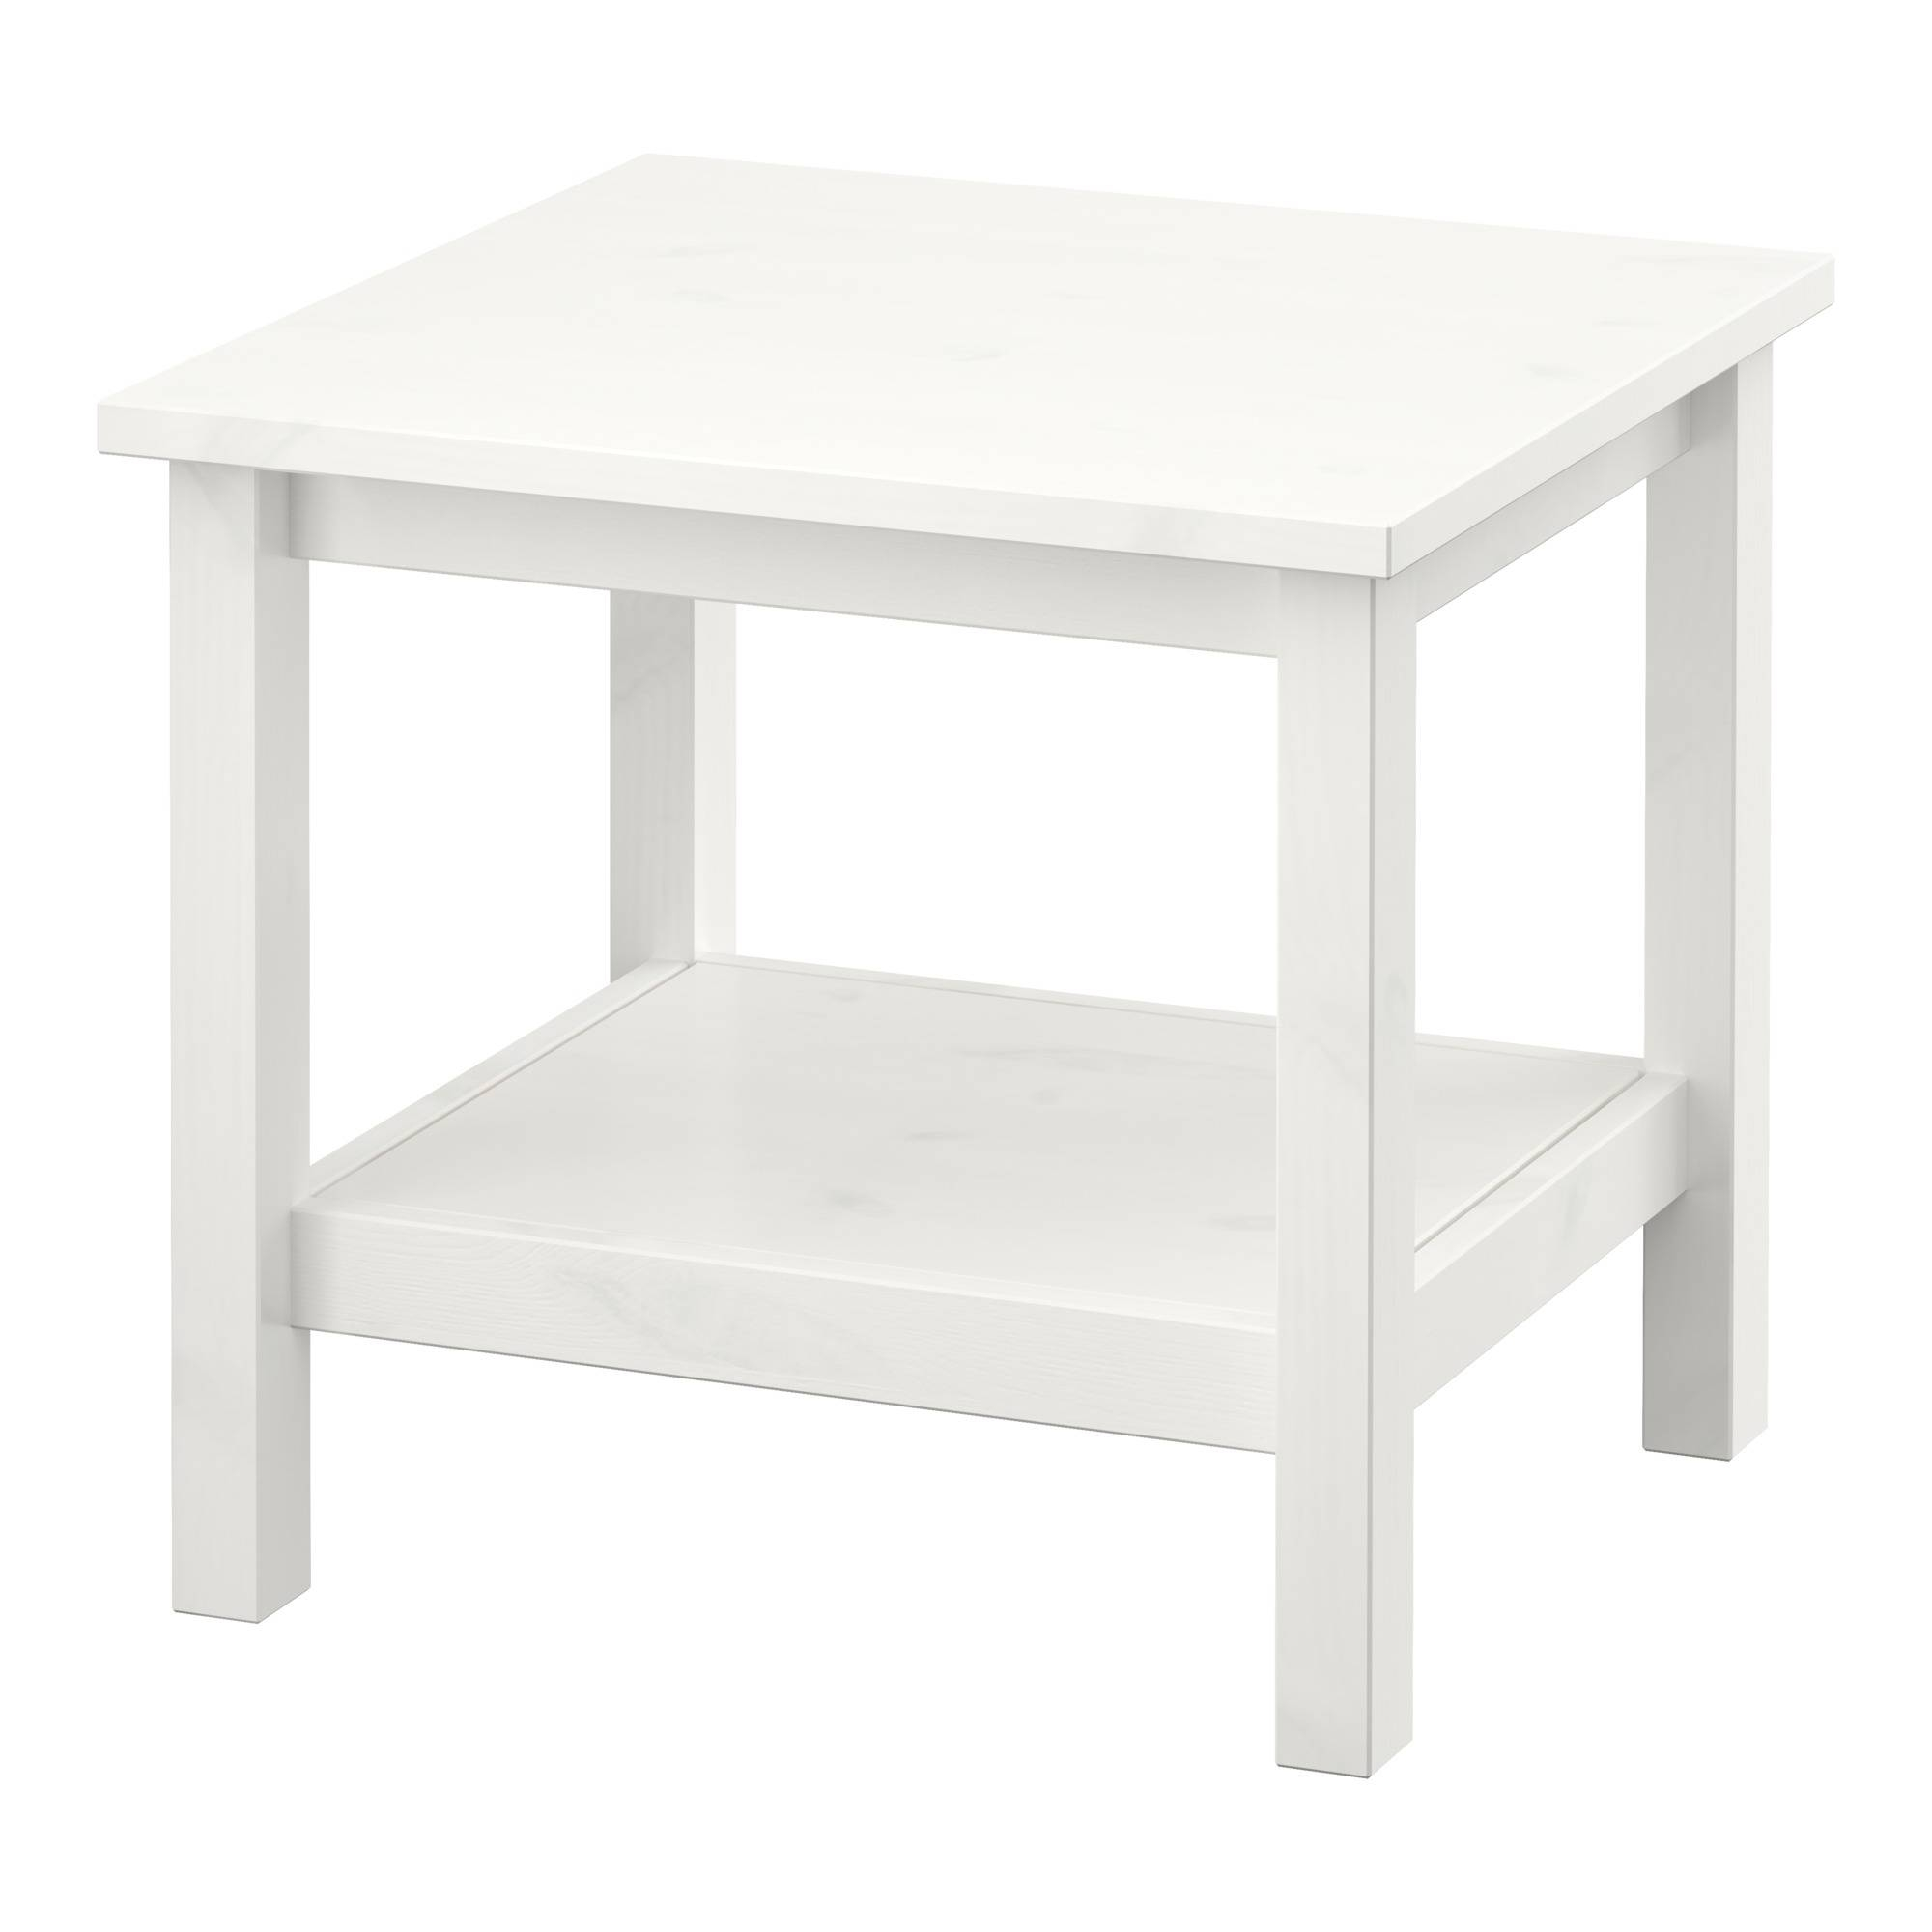 Coffee Tables & Console Tables - Ikea regarding White Cube Coffee Tables (Image 10 of 30)